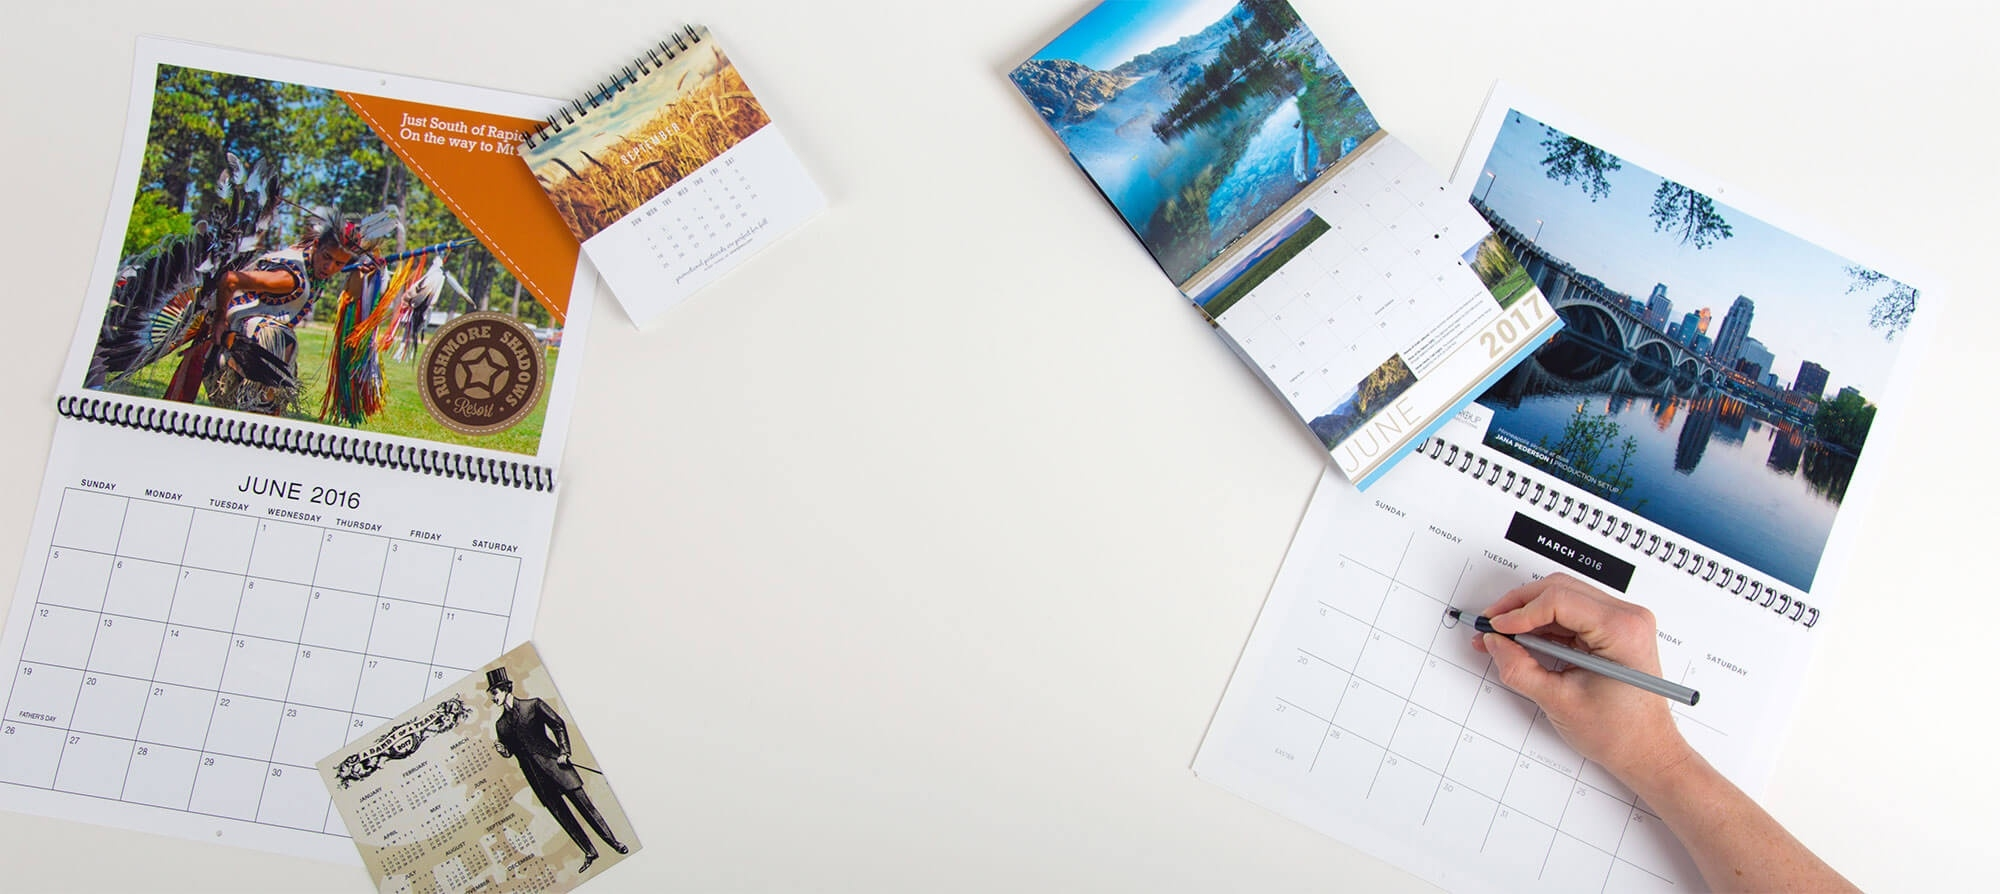 Custom Calendar Printing | Personalized Calendars | Smartpress_Calendar Printing Press Near Me